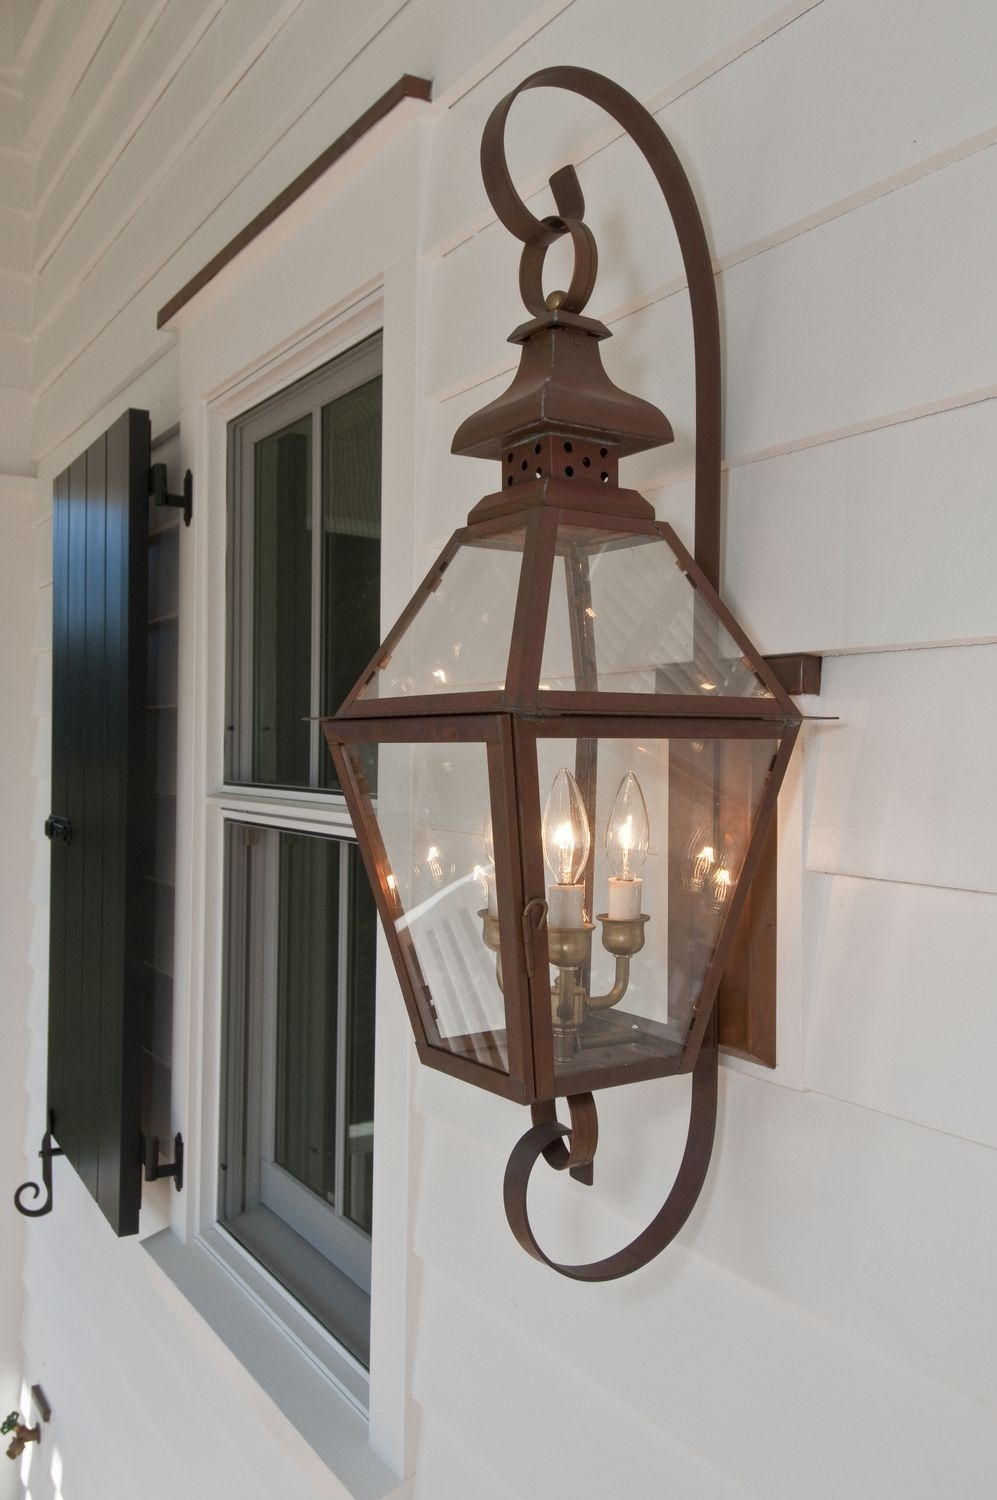 The Tradd Street Ii Lantern — Gas Or Electric | The Collection Inside Outdoor Electric Lanterns (View 19 of 20)